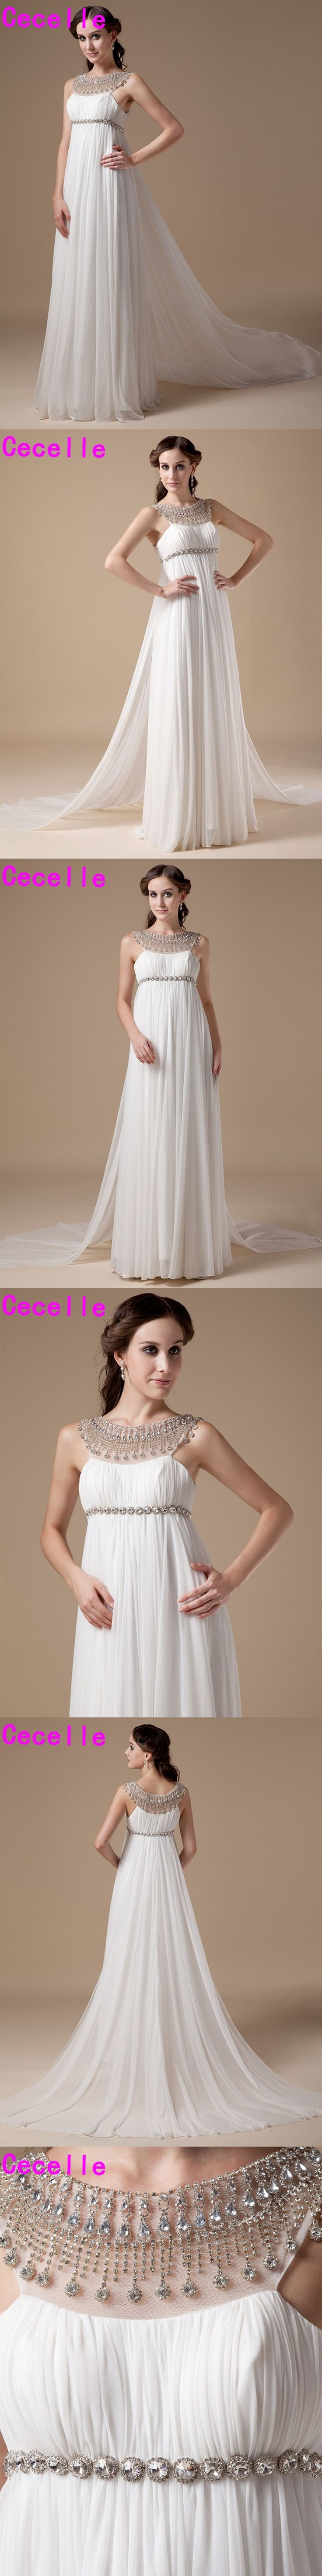 Real Photo 2017 Informal Chiffon Maternity Wedding Dresses Gowns Empire Waist Crystals Bridal Gowns For Pregnant Women Custom